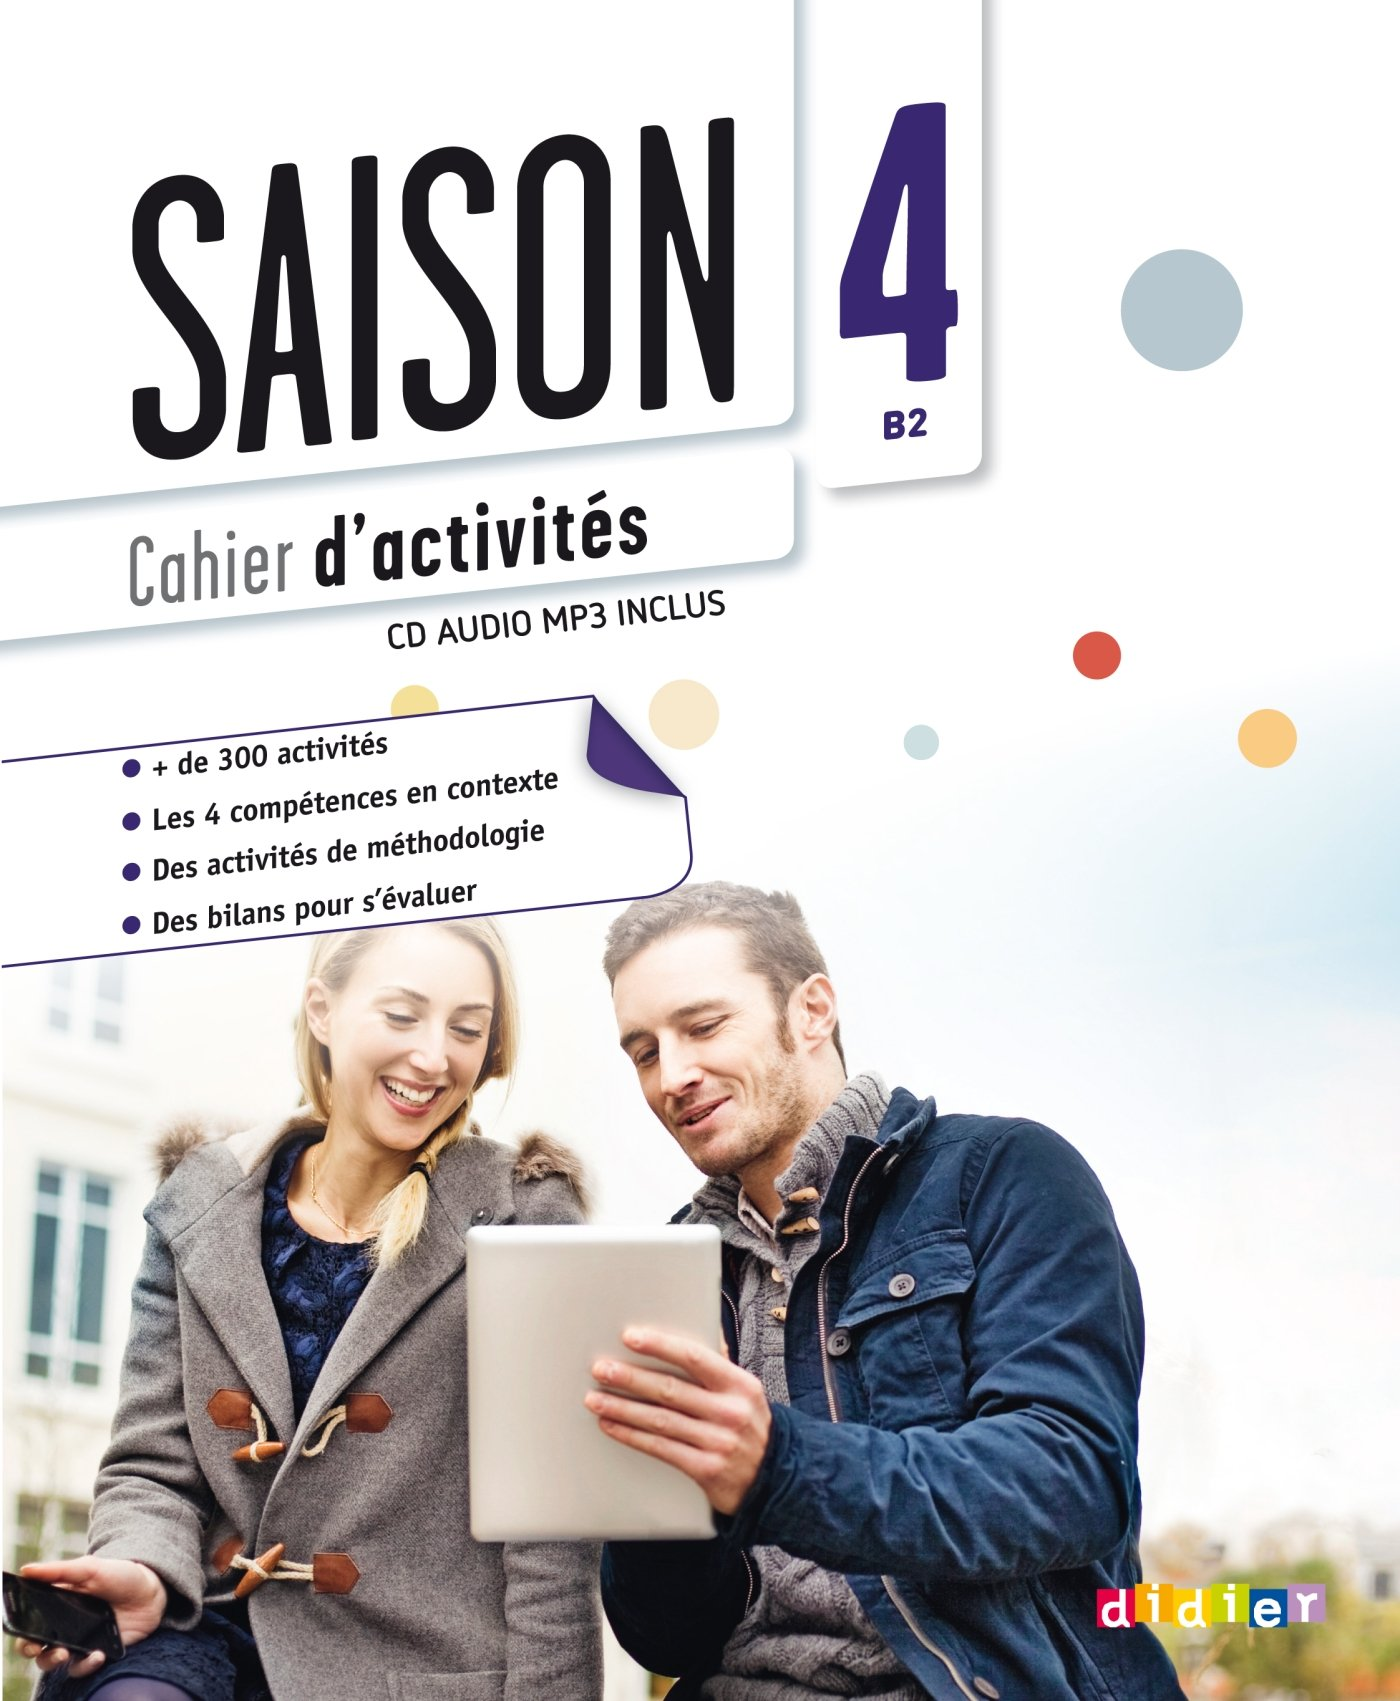 Saison 4 niv.B2   Cahier   CD mp3